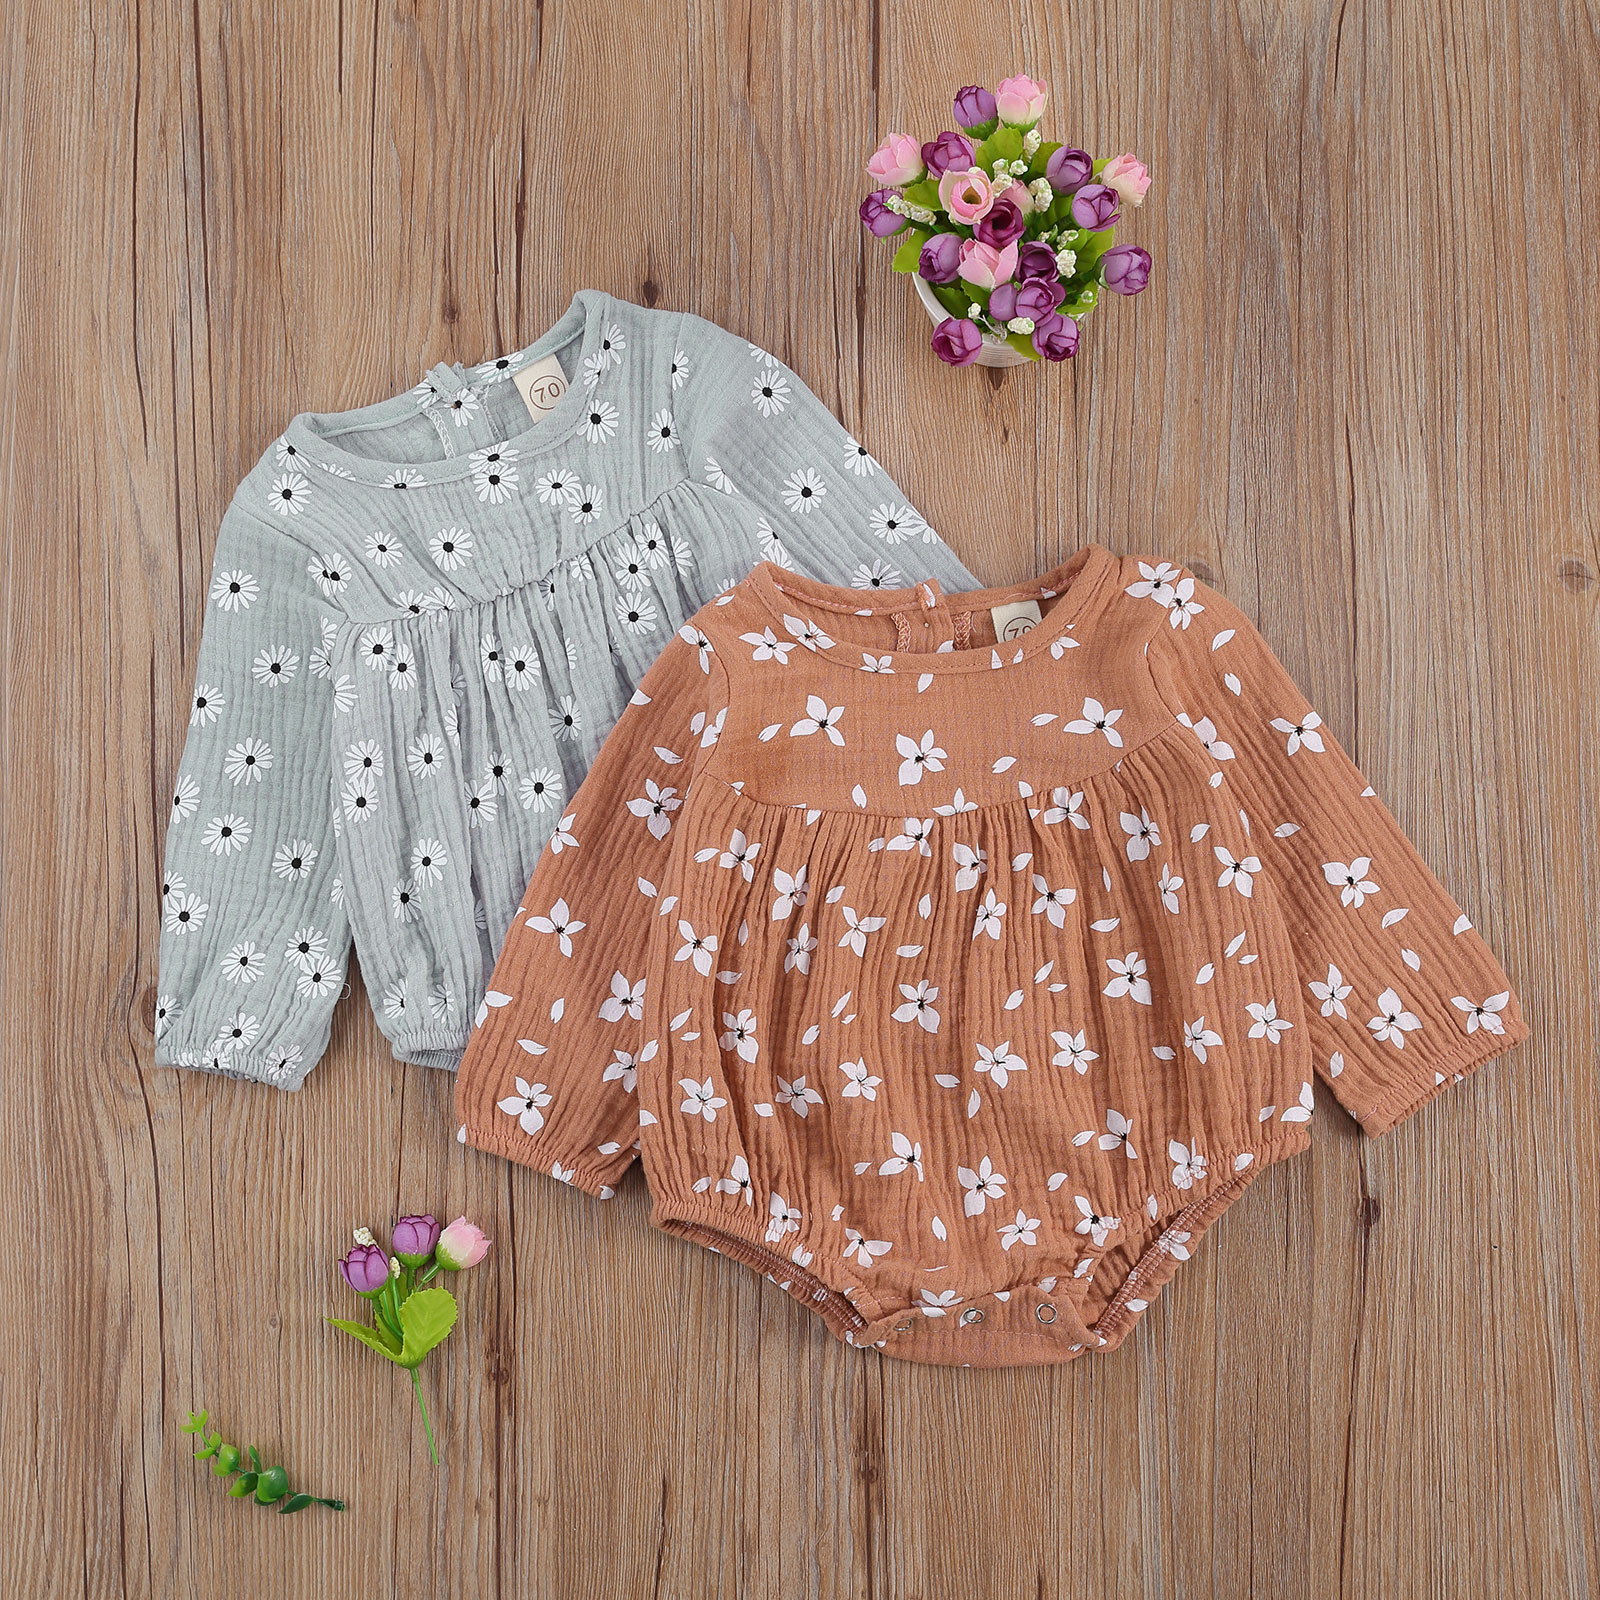 Newborn Baby Girl Romper  Long Sleeve Round Neck Daisy Print Bodysui Outfit Sunsuit 0-18months